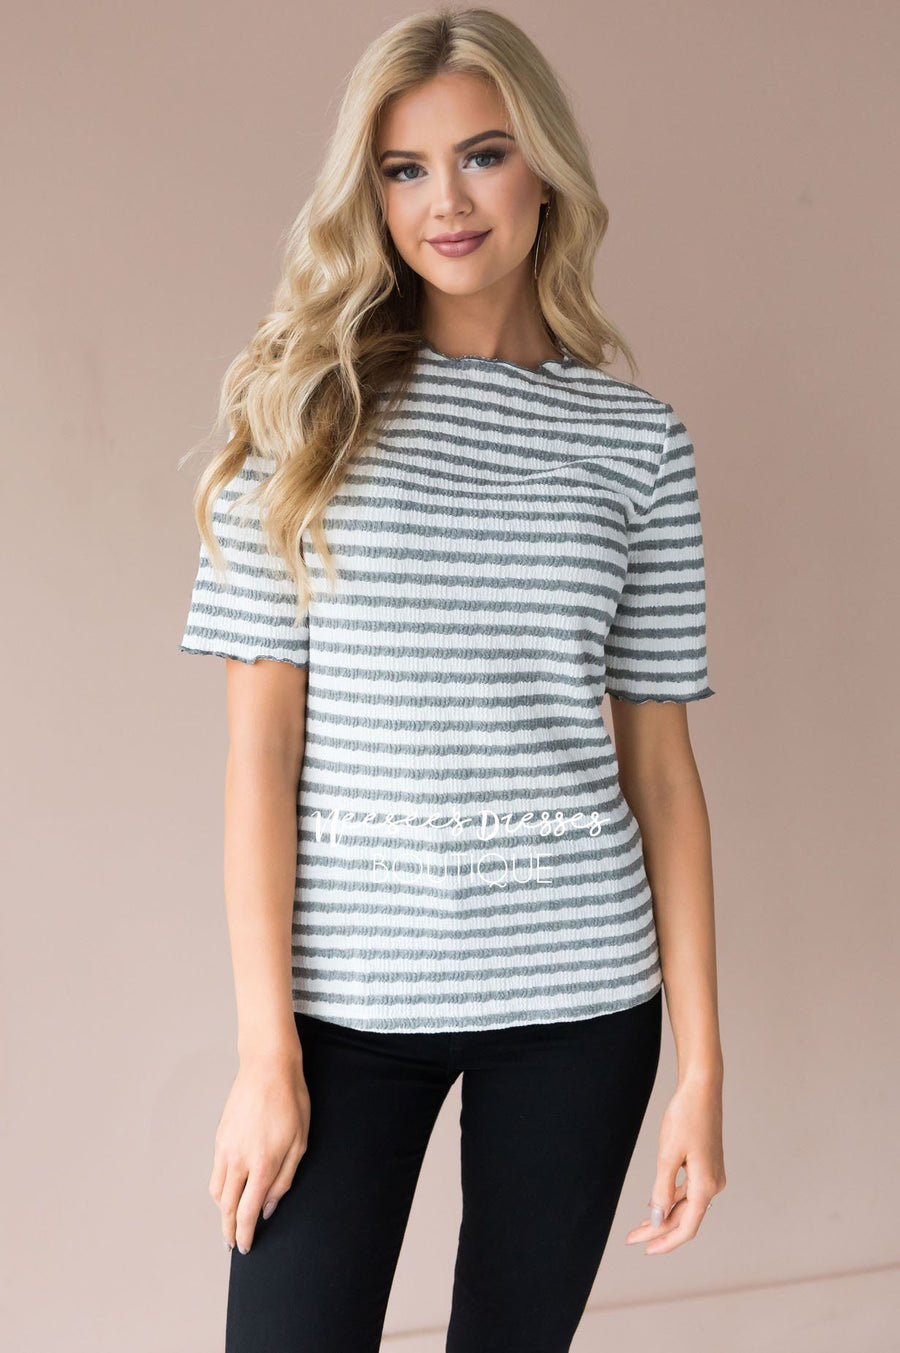 Winning with Stripes Textured Top